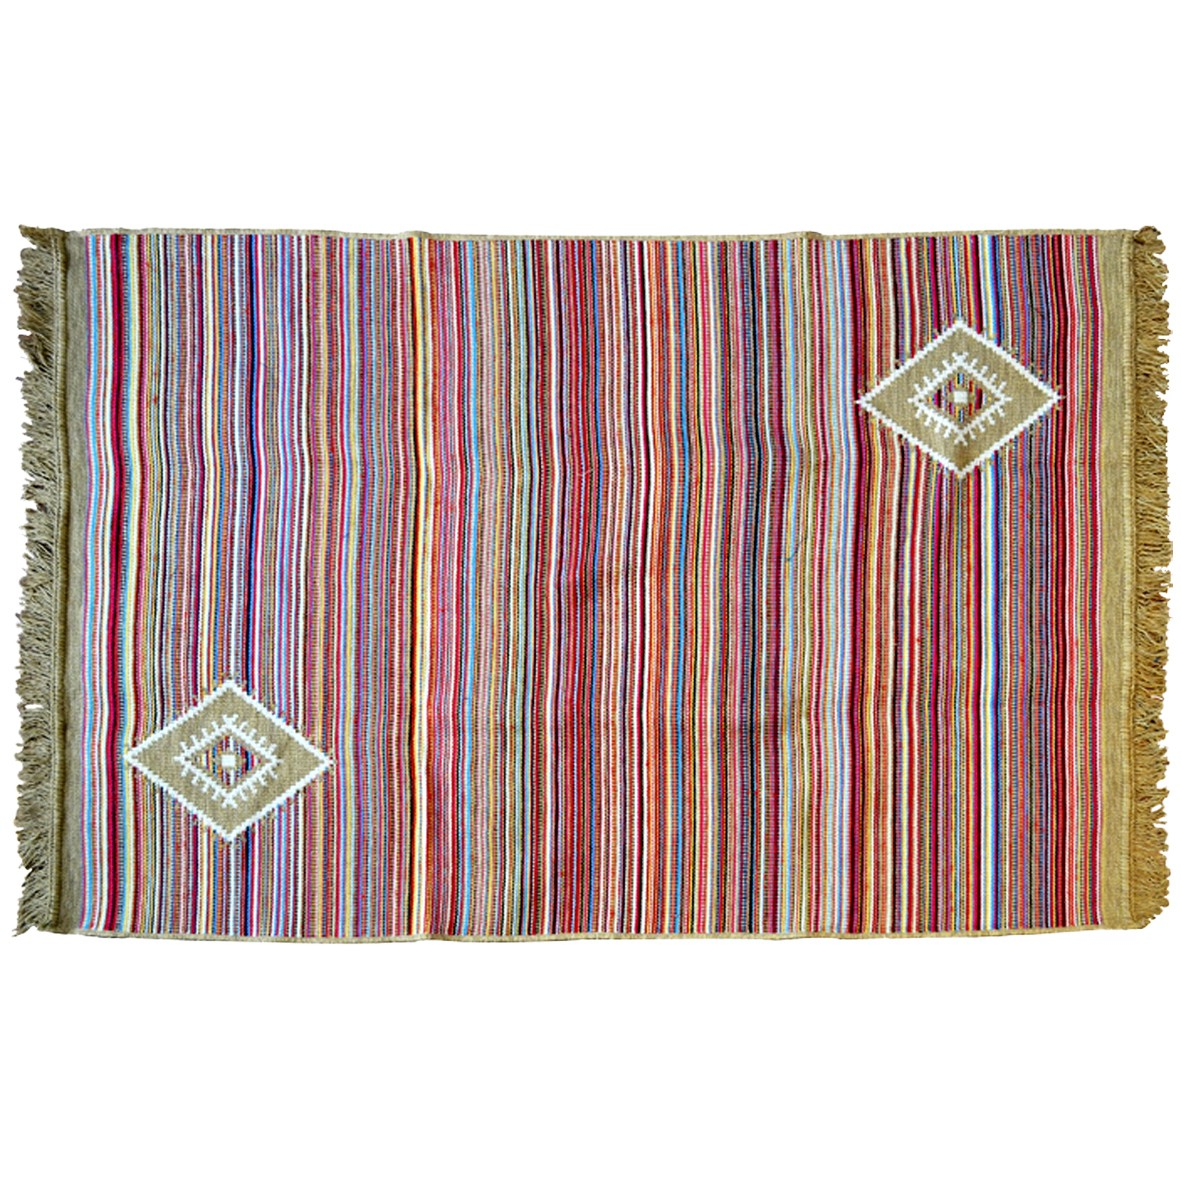 Striped Rug Beige and Multi